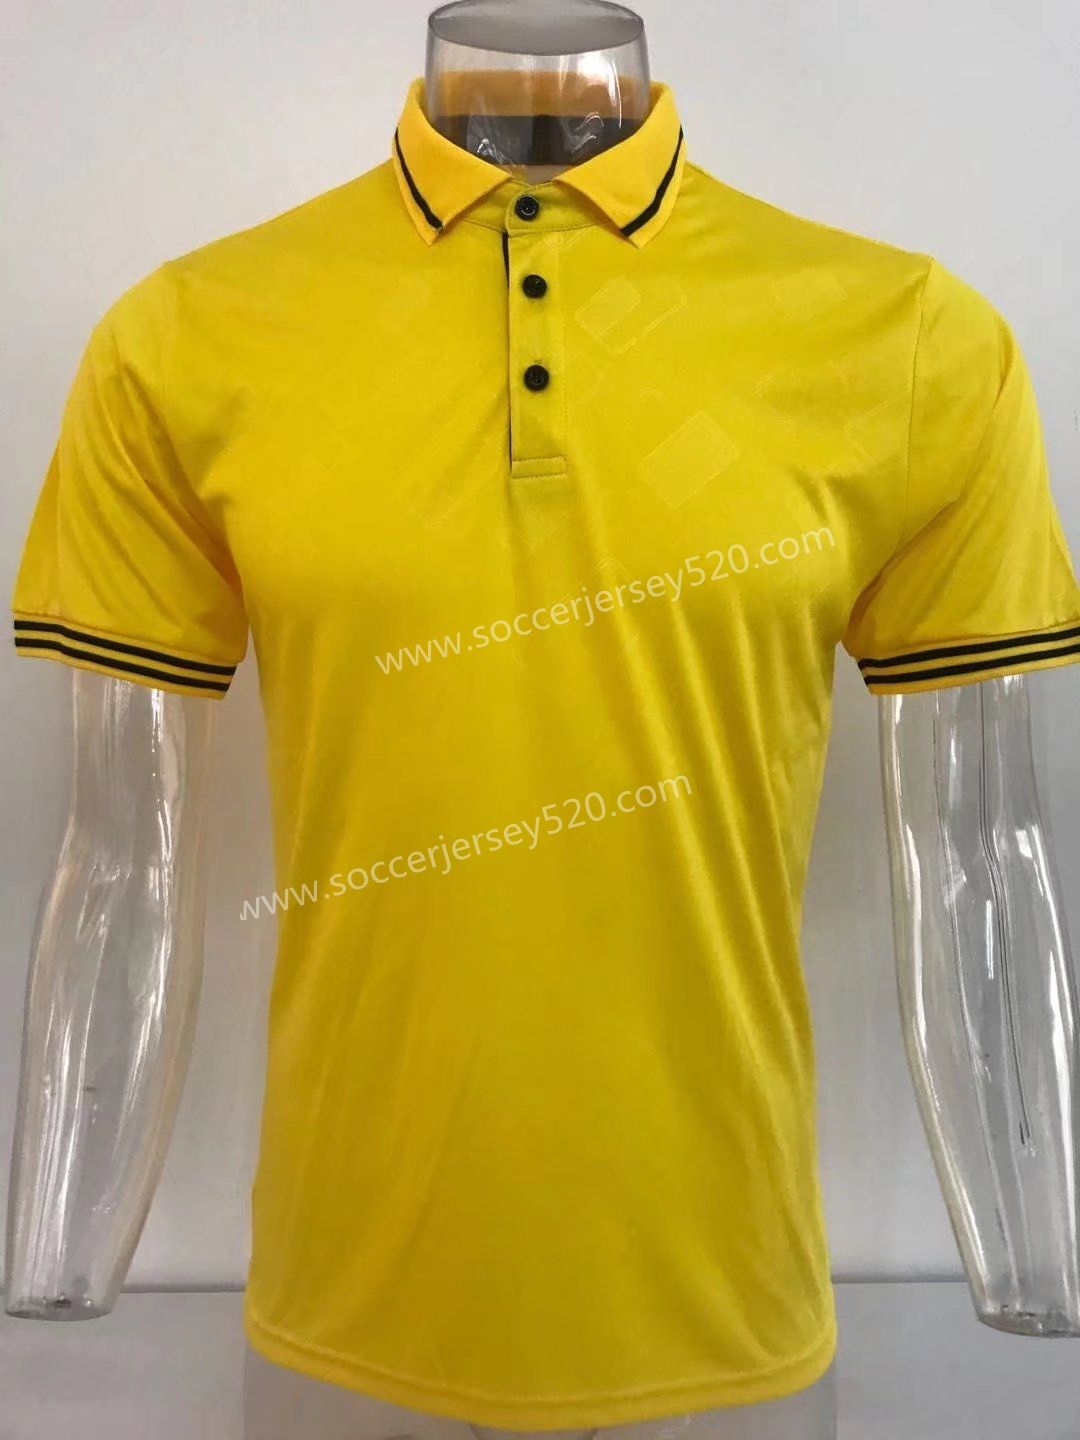 Thailand Polo Shirt Without Logo Yellow Top 13 Cheap Soccer